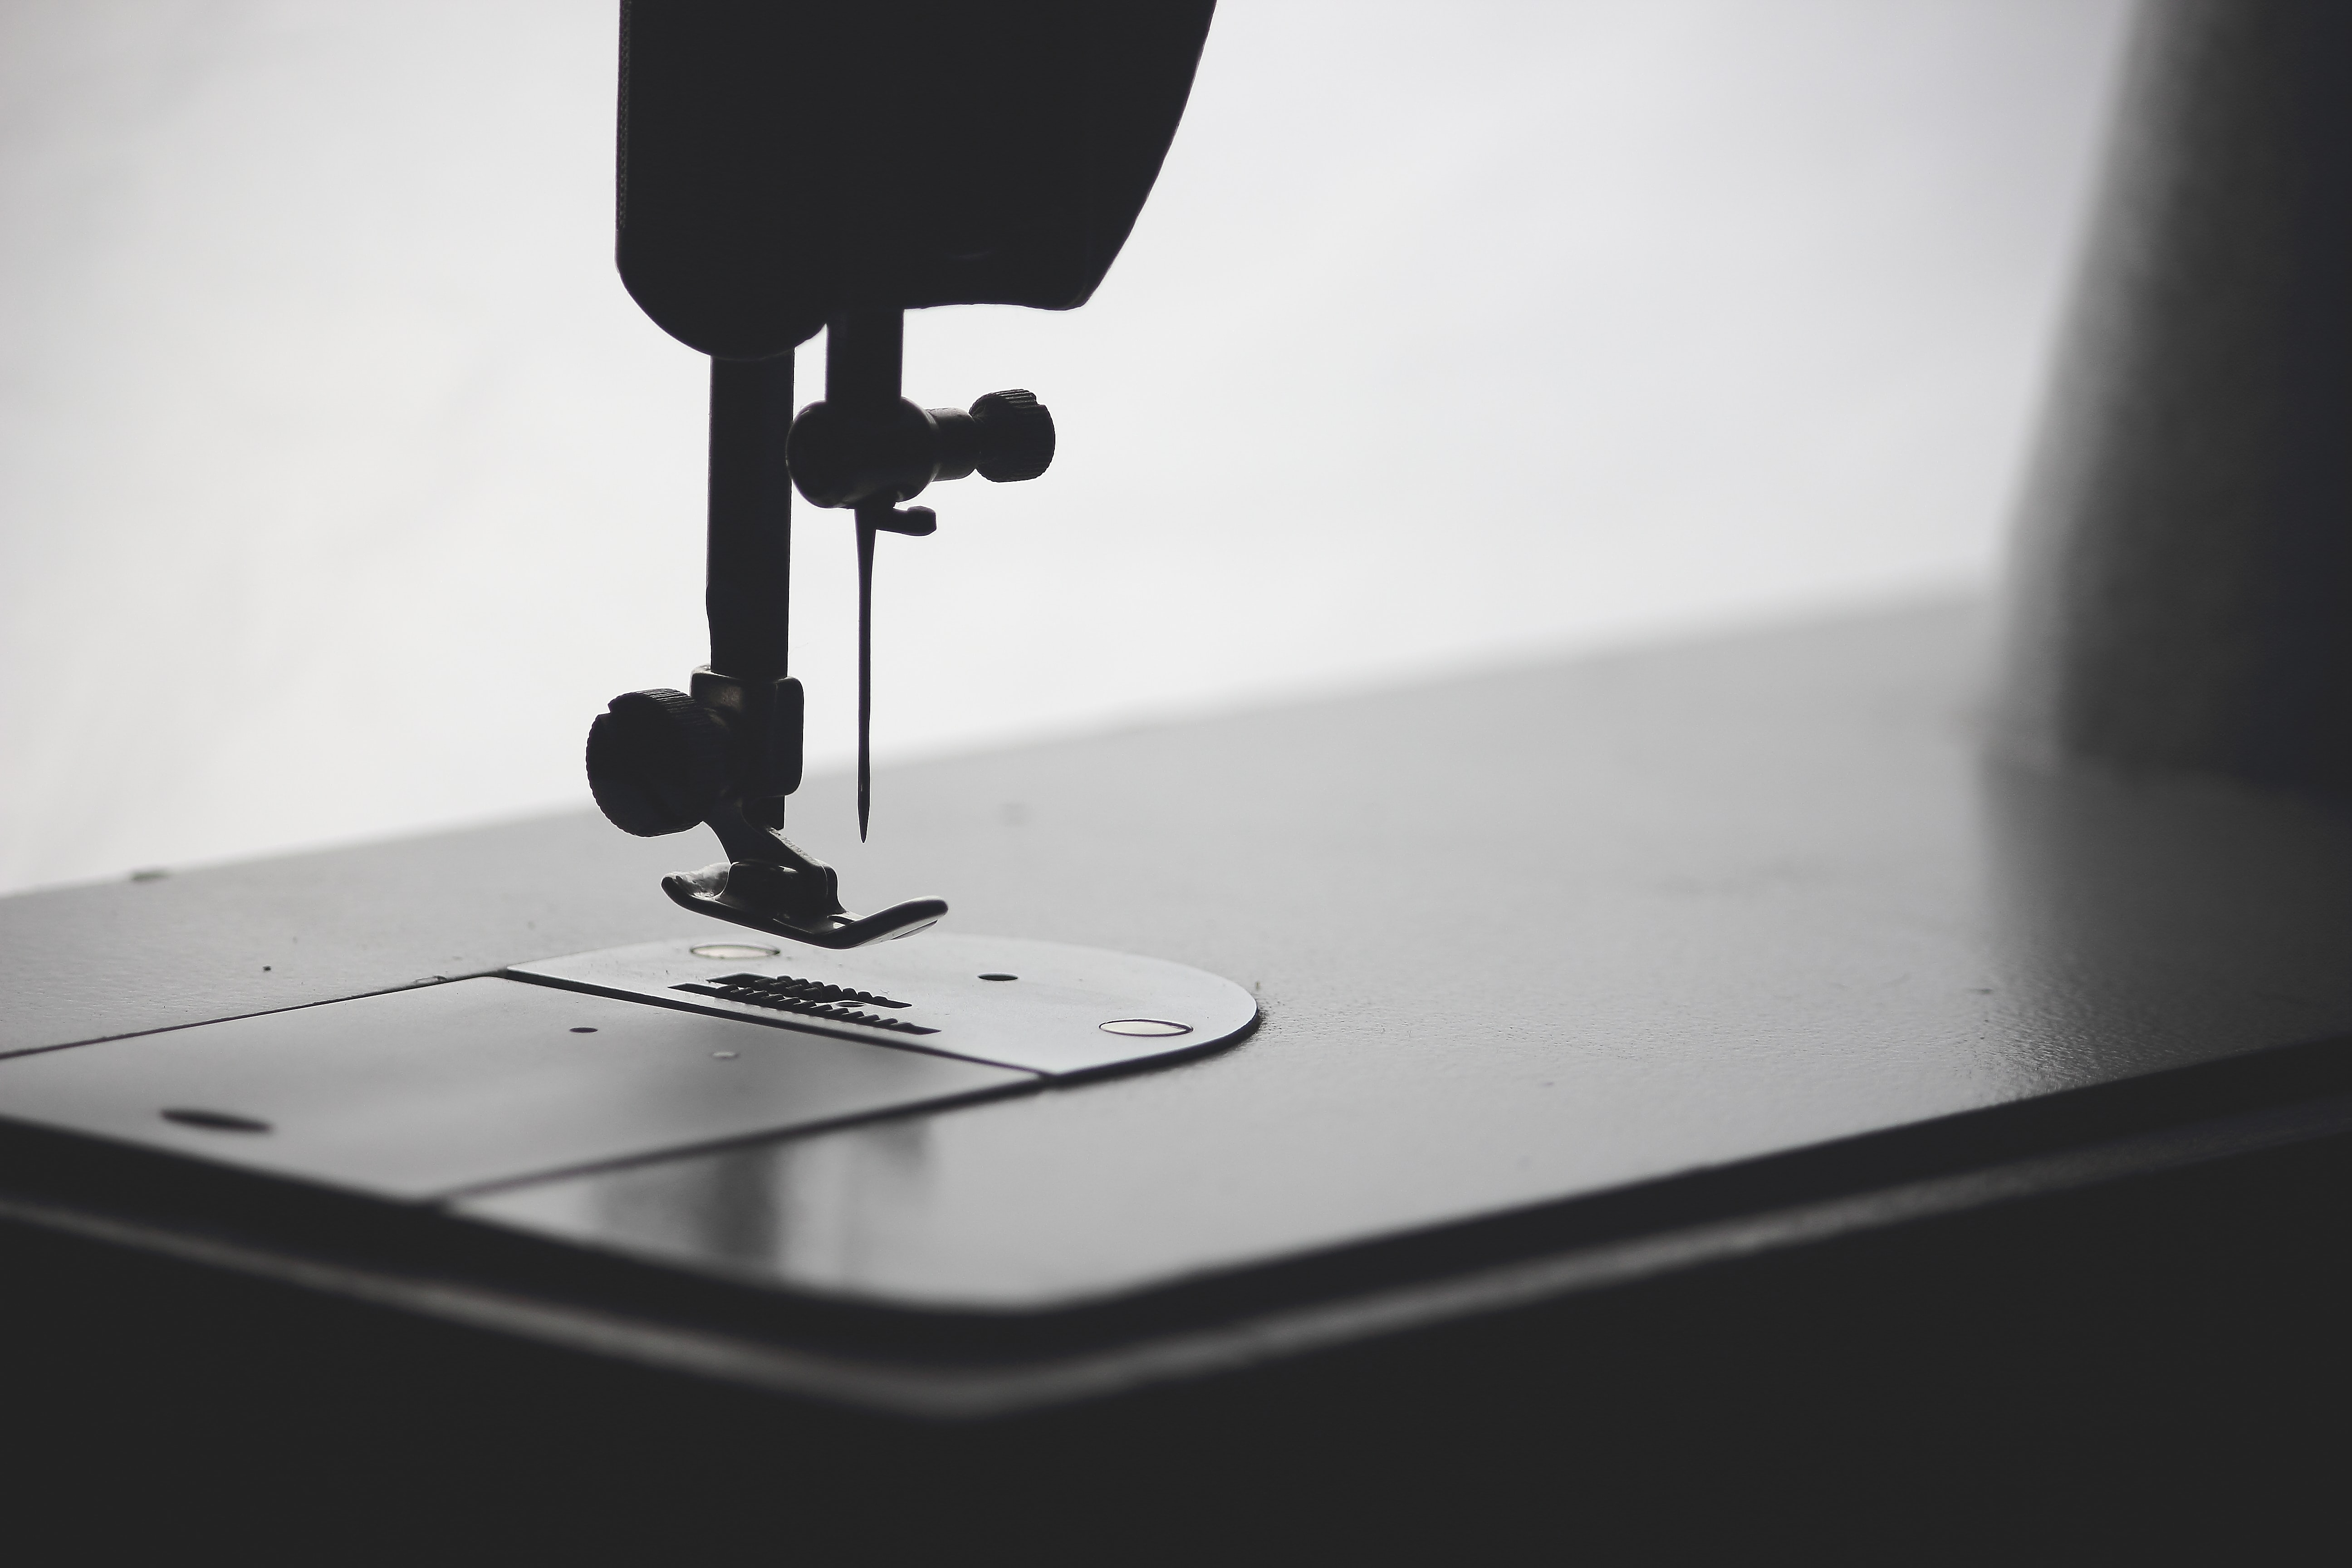 Silhouette of the needle and foot of a sewing machine